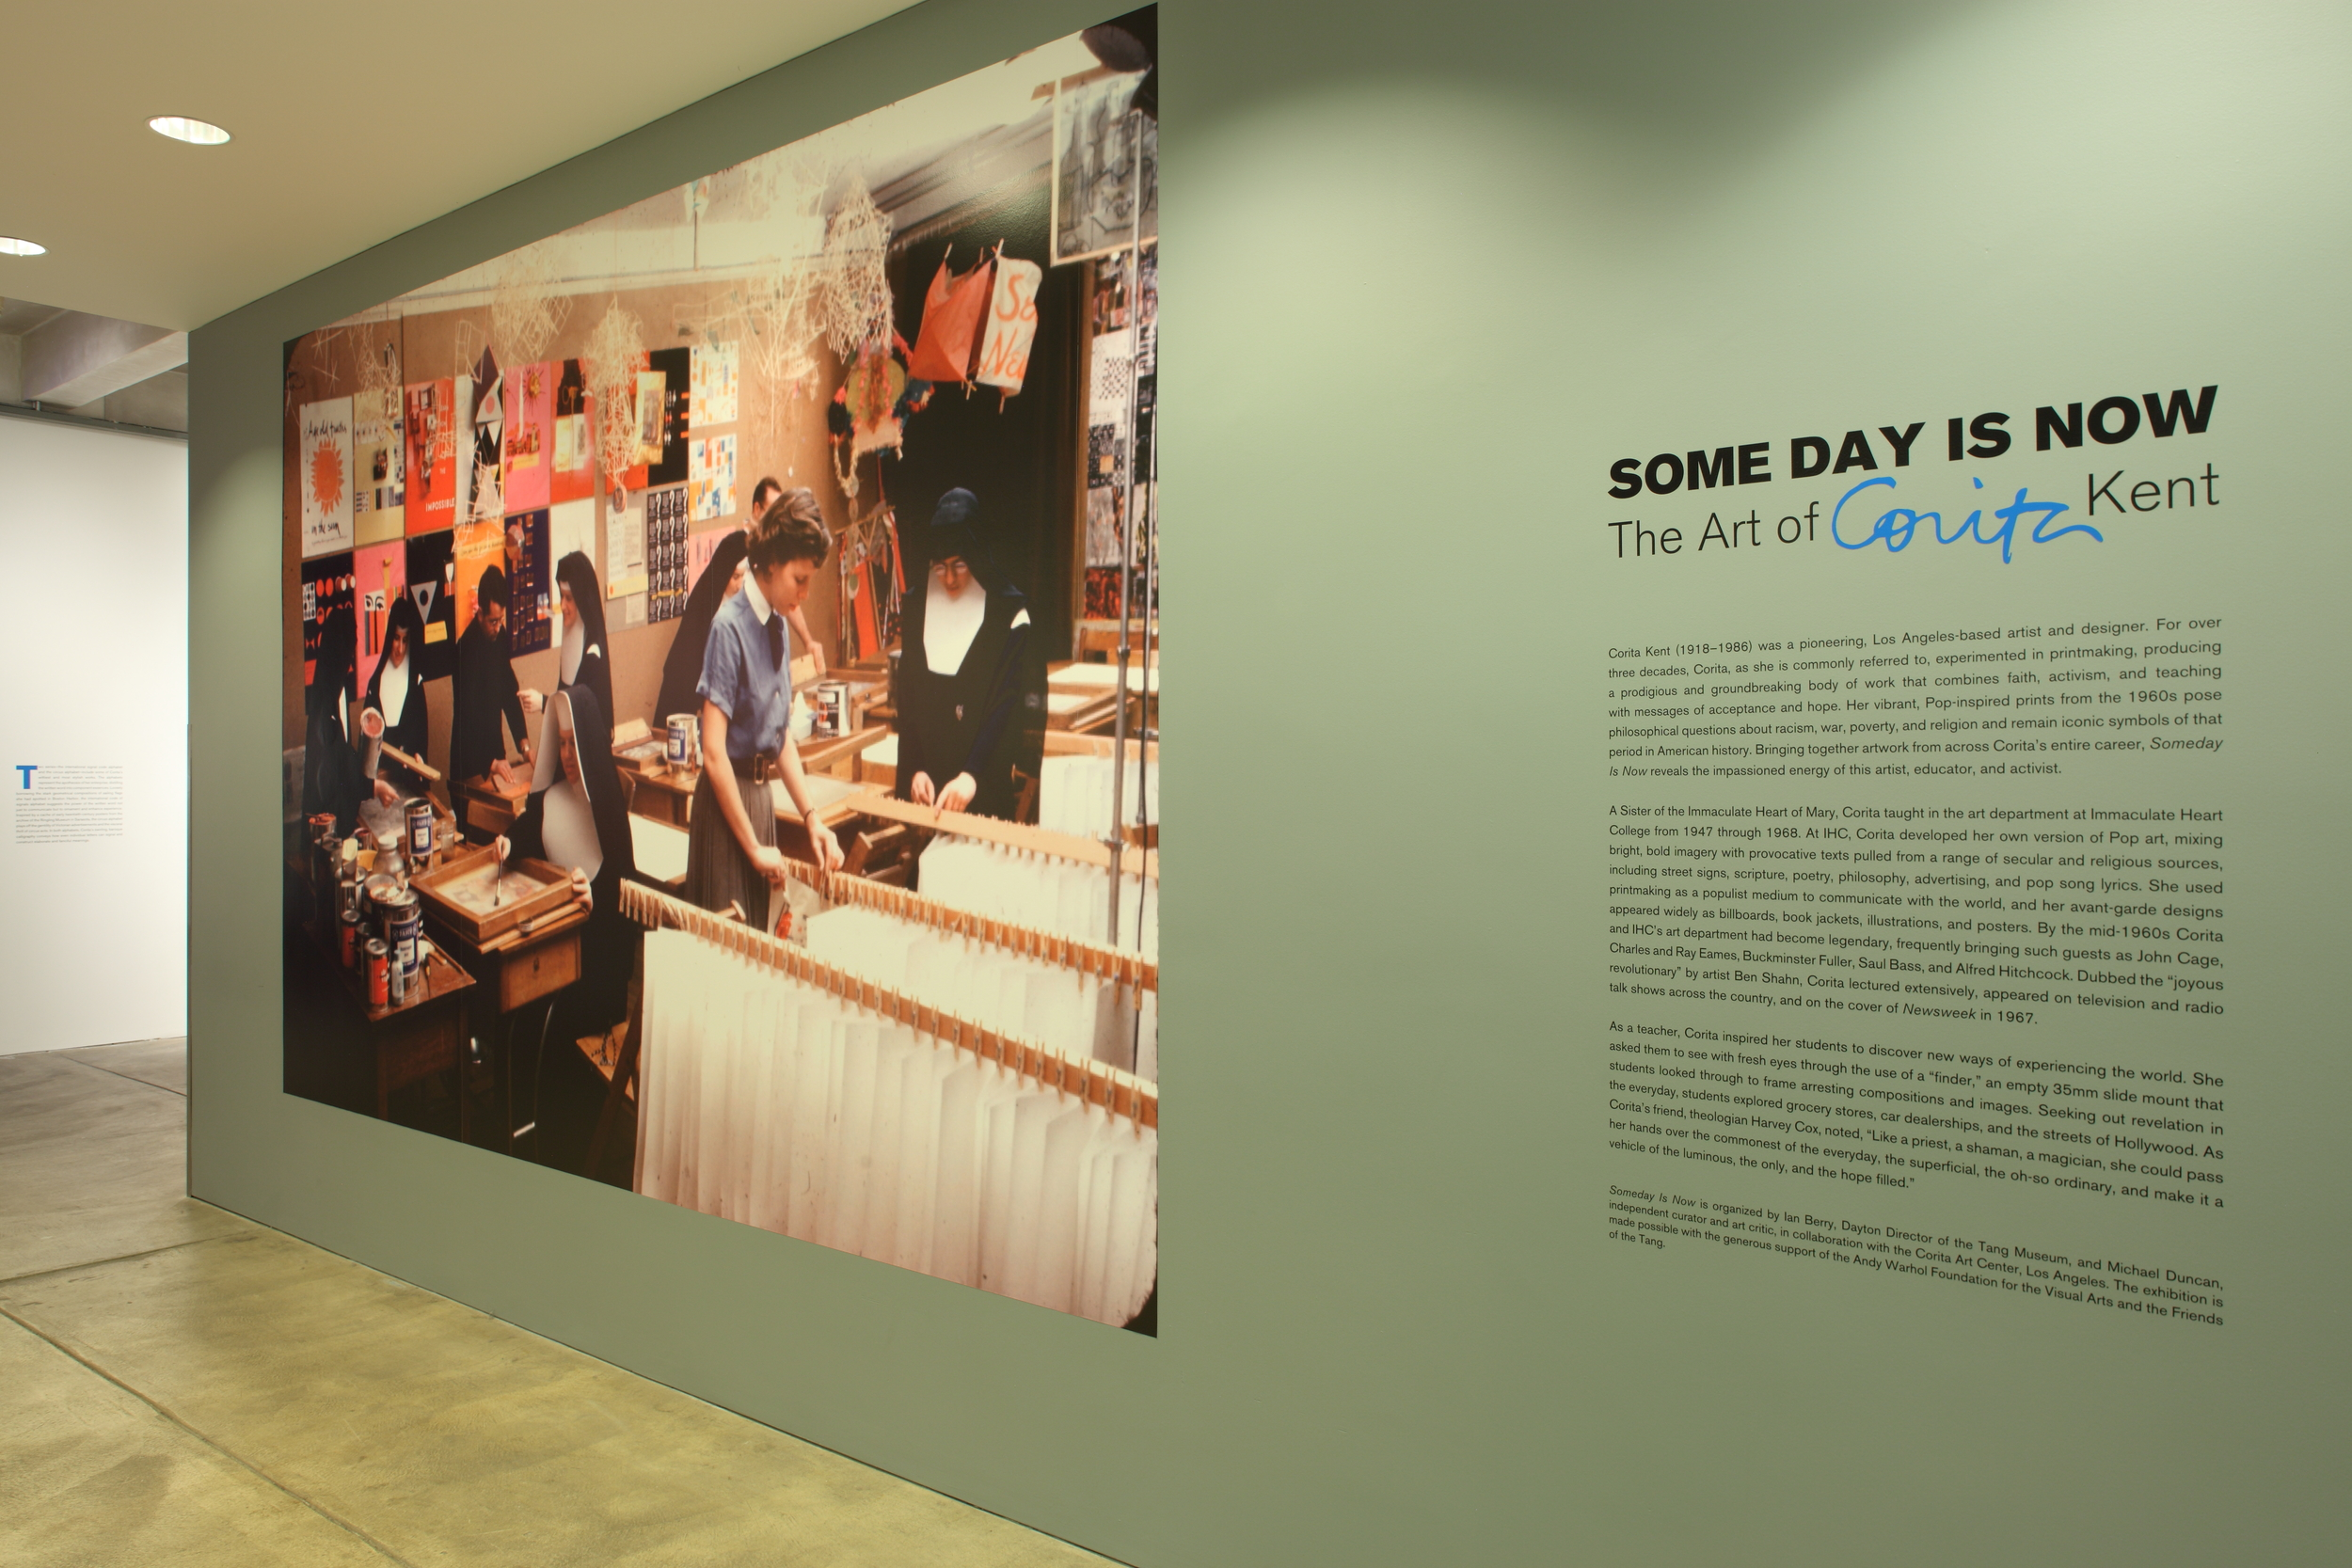 Some Day is Now - The Art of Corita Kent at AWM, 2015 0001.JPG